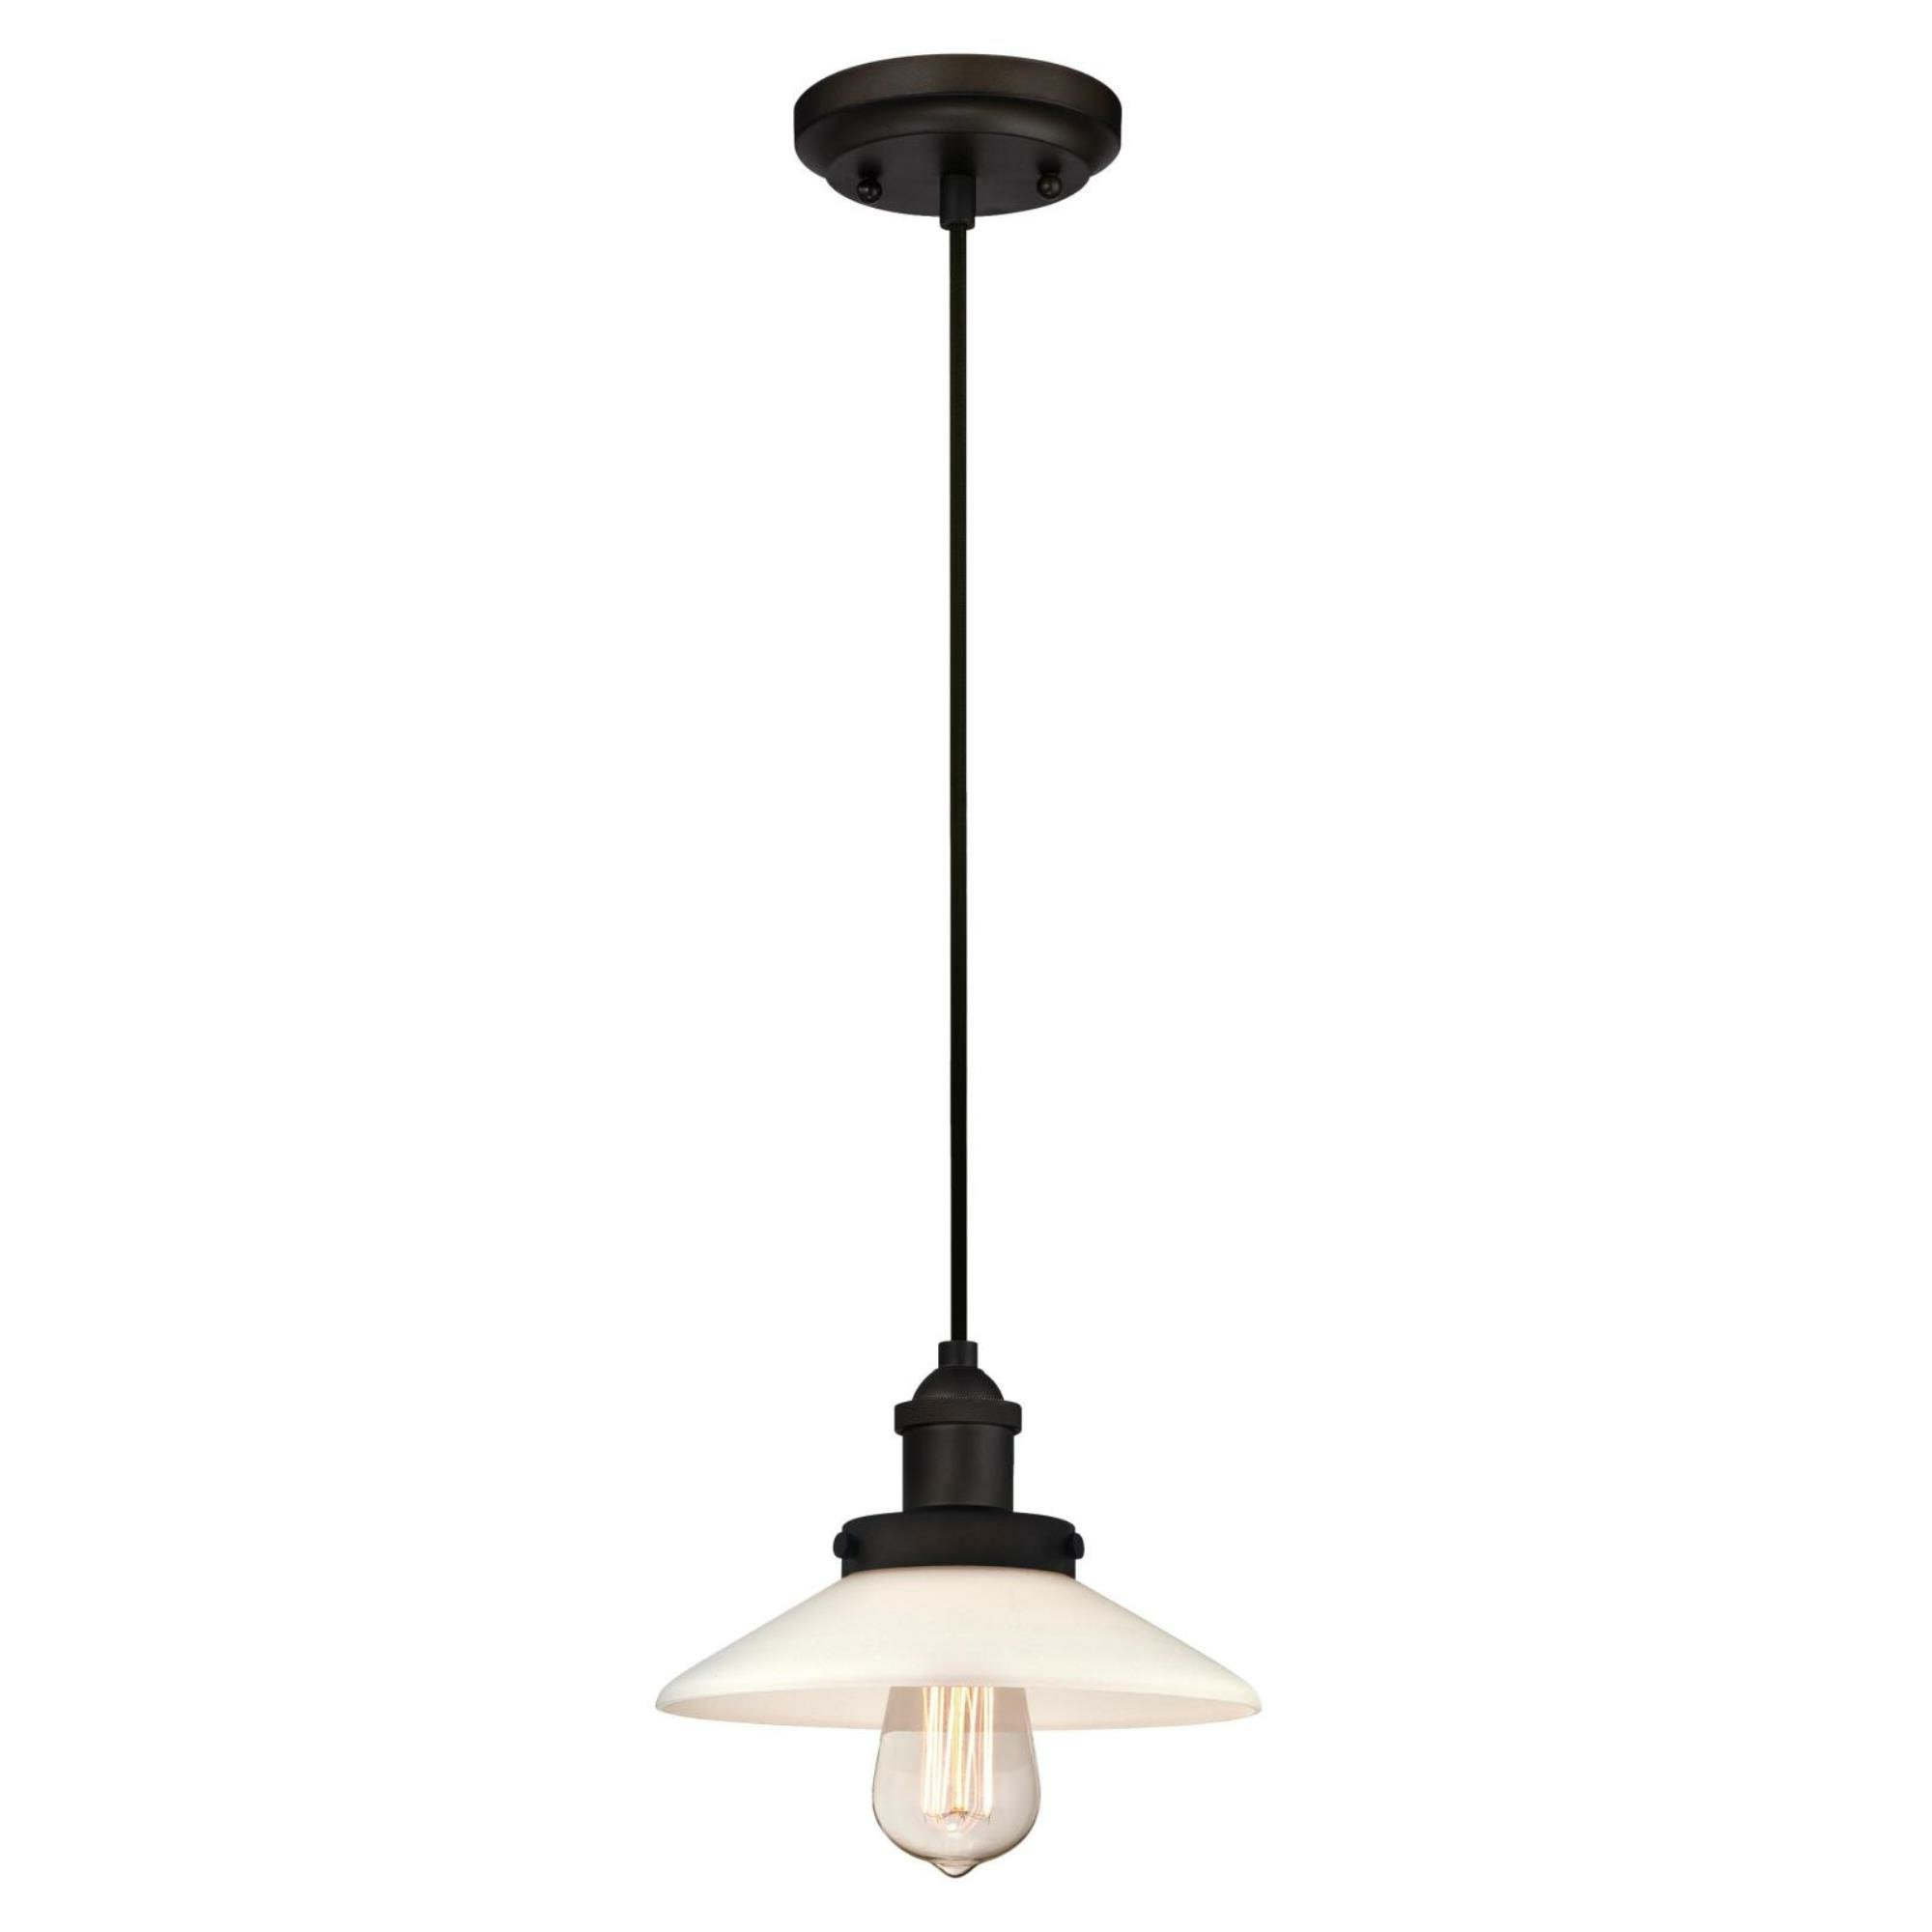 Darcella 1 Light Single Cone Pendant In Well Known Abordale 1 Light Single Dome Pendants (View 17 of 25)